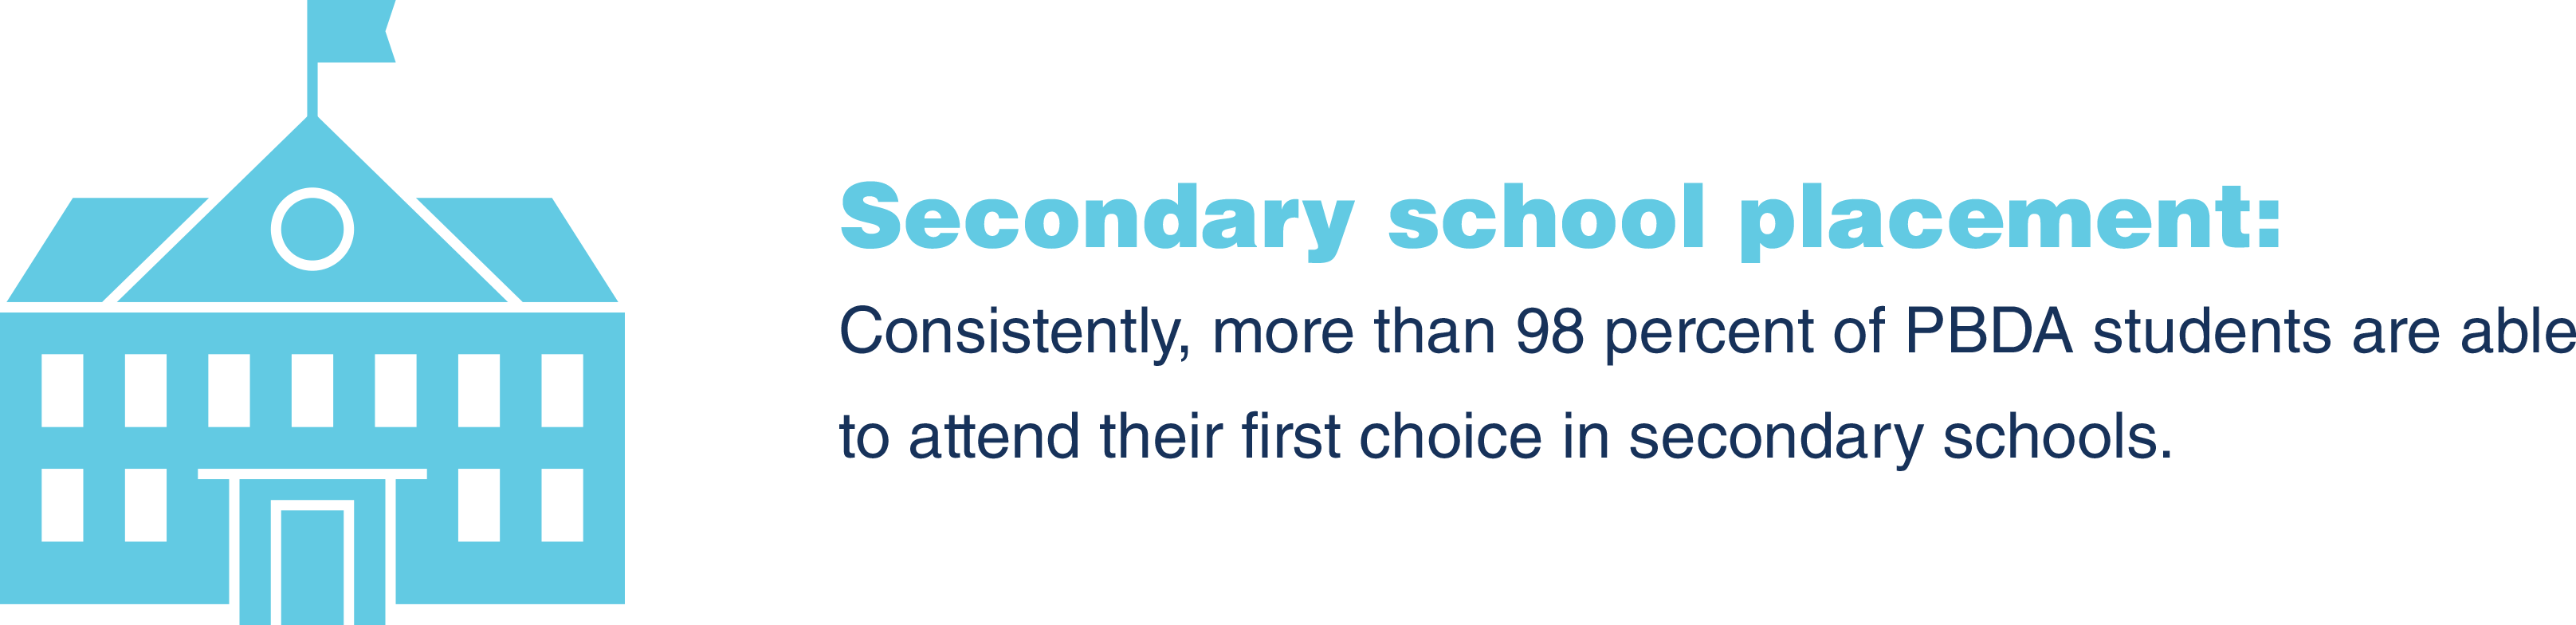 Secondary school placement: Consistently, more than 98 percent of PBDA students are able to attend their first choice in secondary schools.